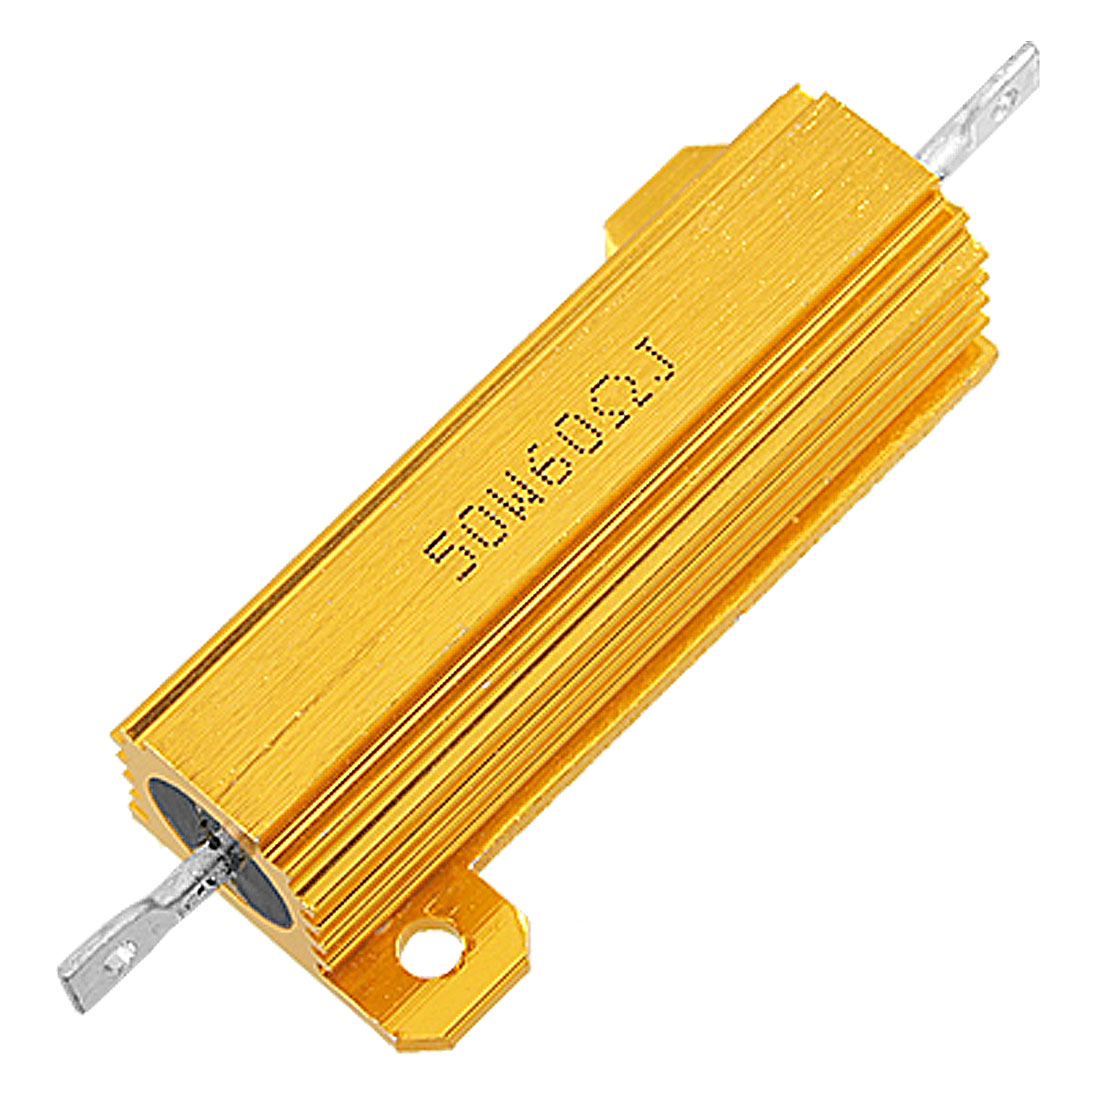 Chassis Mount Wirewound Aluminum Case Power Resistor 60 0hm 5% 50W